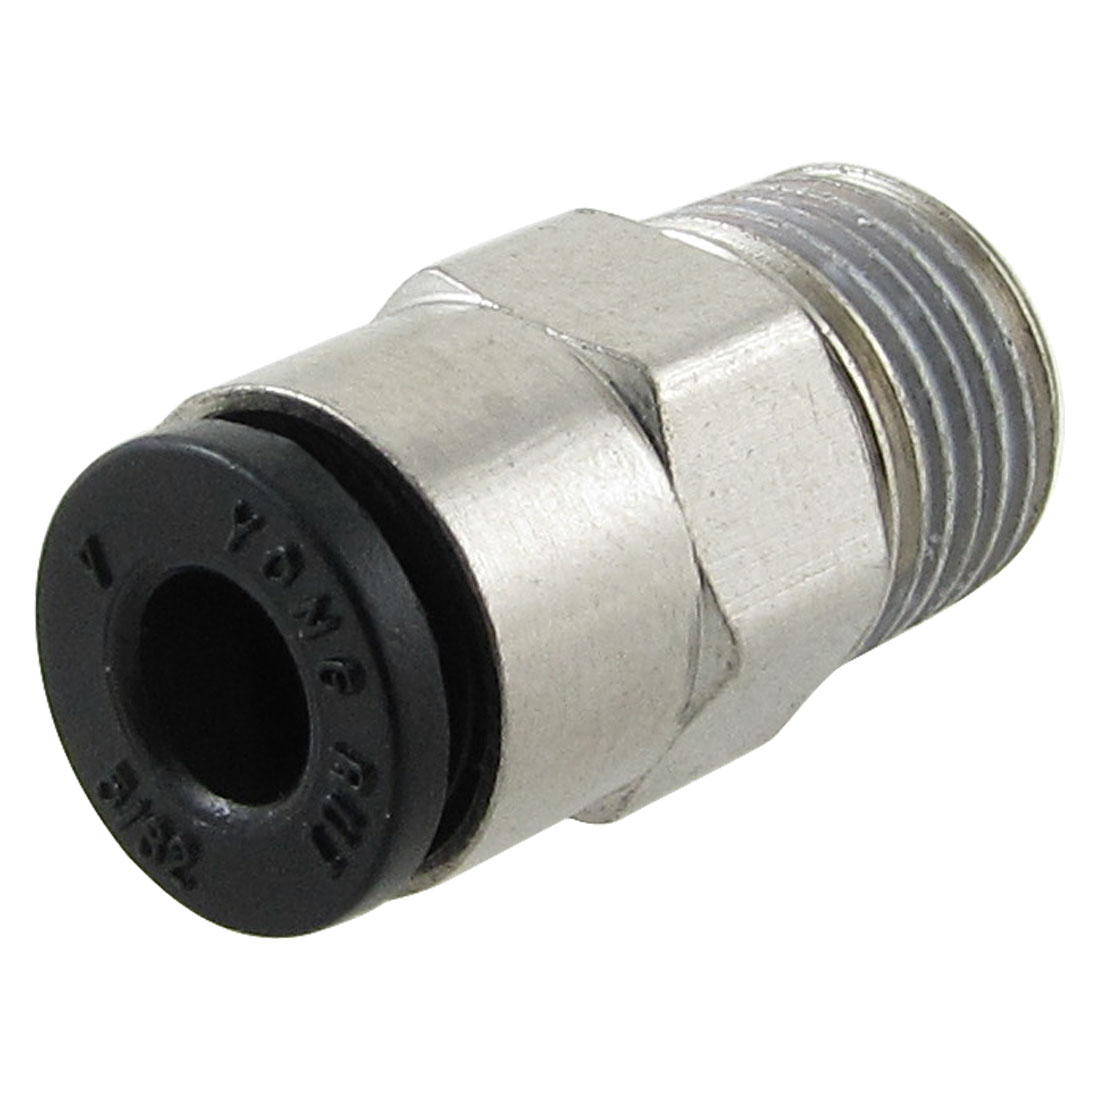 "5/32"" 4mm One Touch M9 Male Thread Pneumatic Straight Quick Fitting"